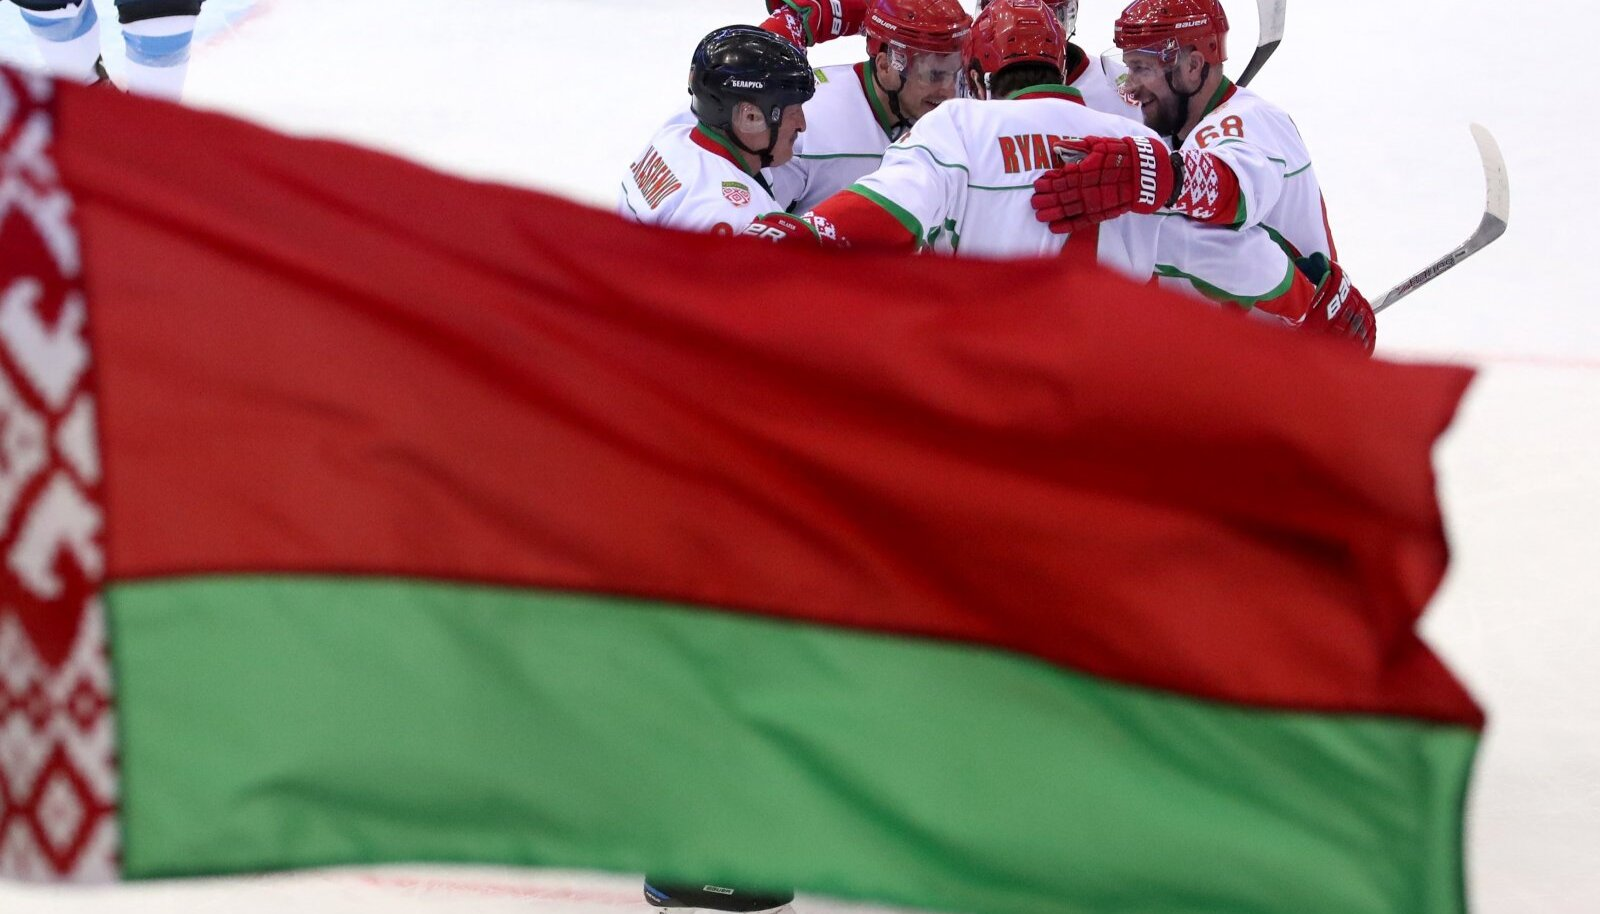 Belarus President Lukashenko takes part in 16th Christmas International Amateur Ice Hockey Tournament